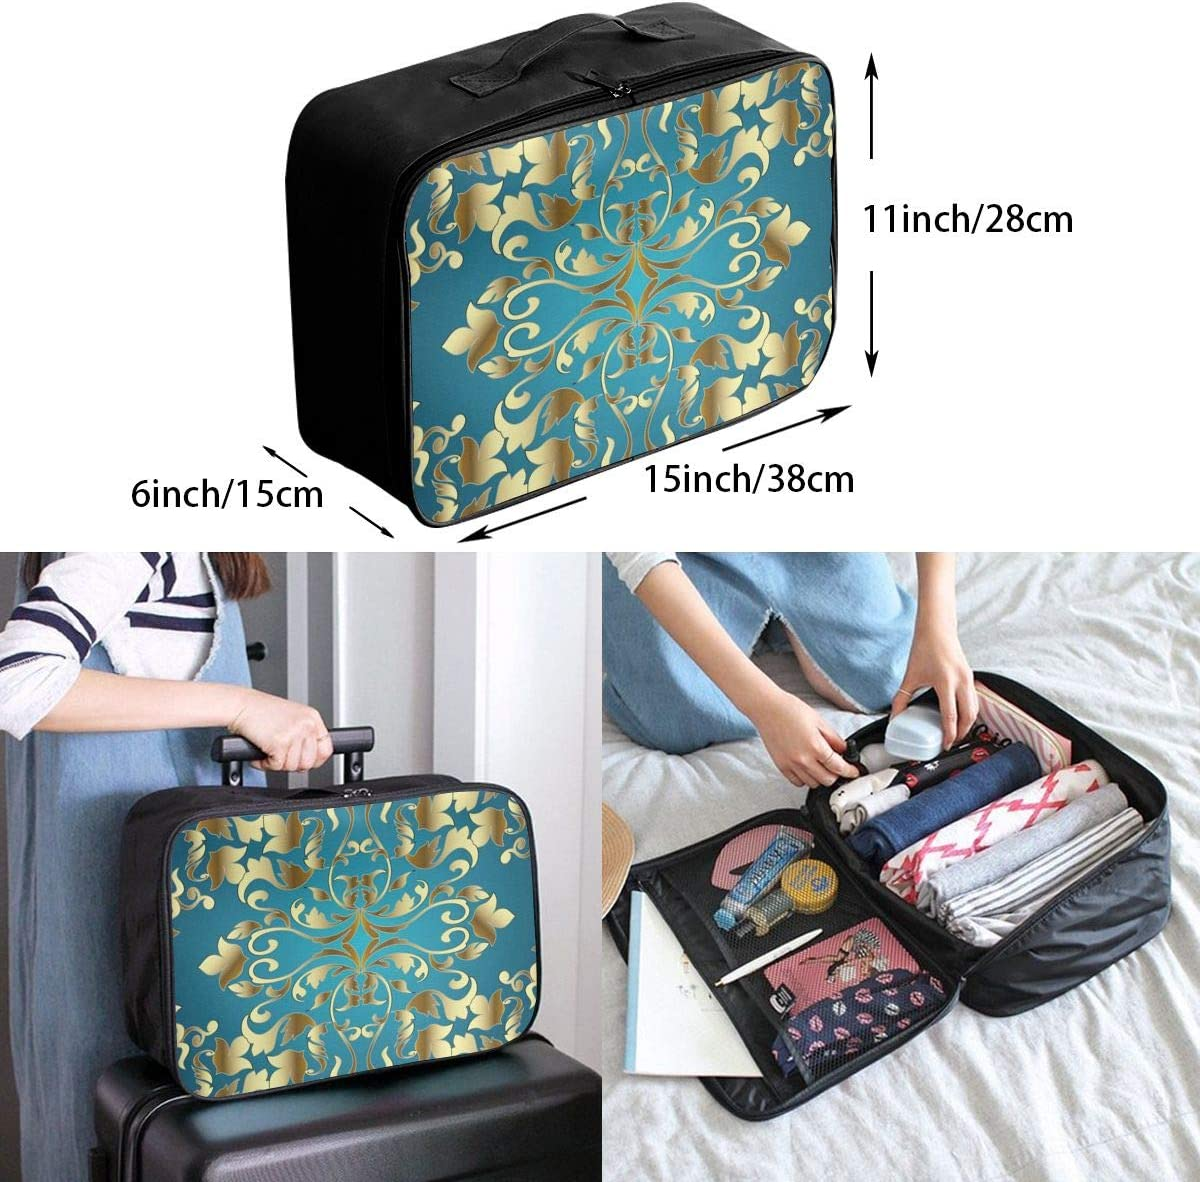 Yunshm Rolling Swirl Leaves Royal Baroque Decorative Texture Personalized Trolley Handbag Waterproof Unisex Large Capacity For Business Travel Storage